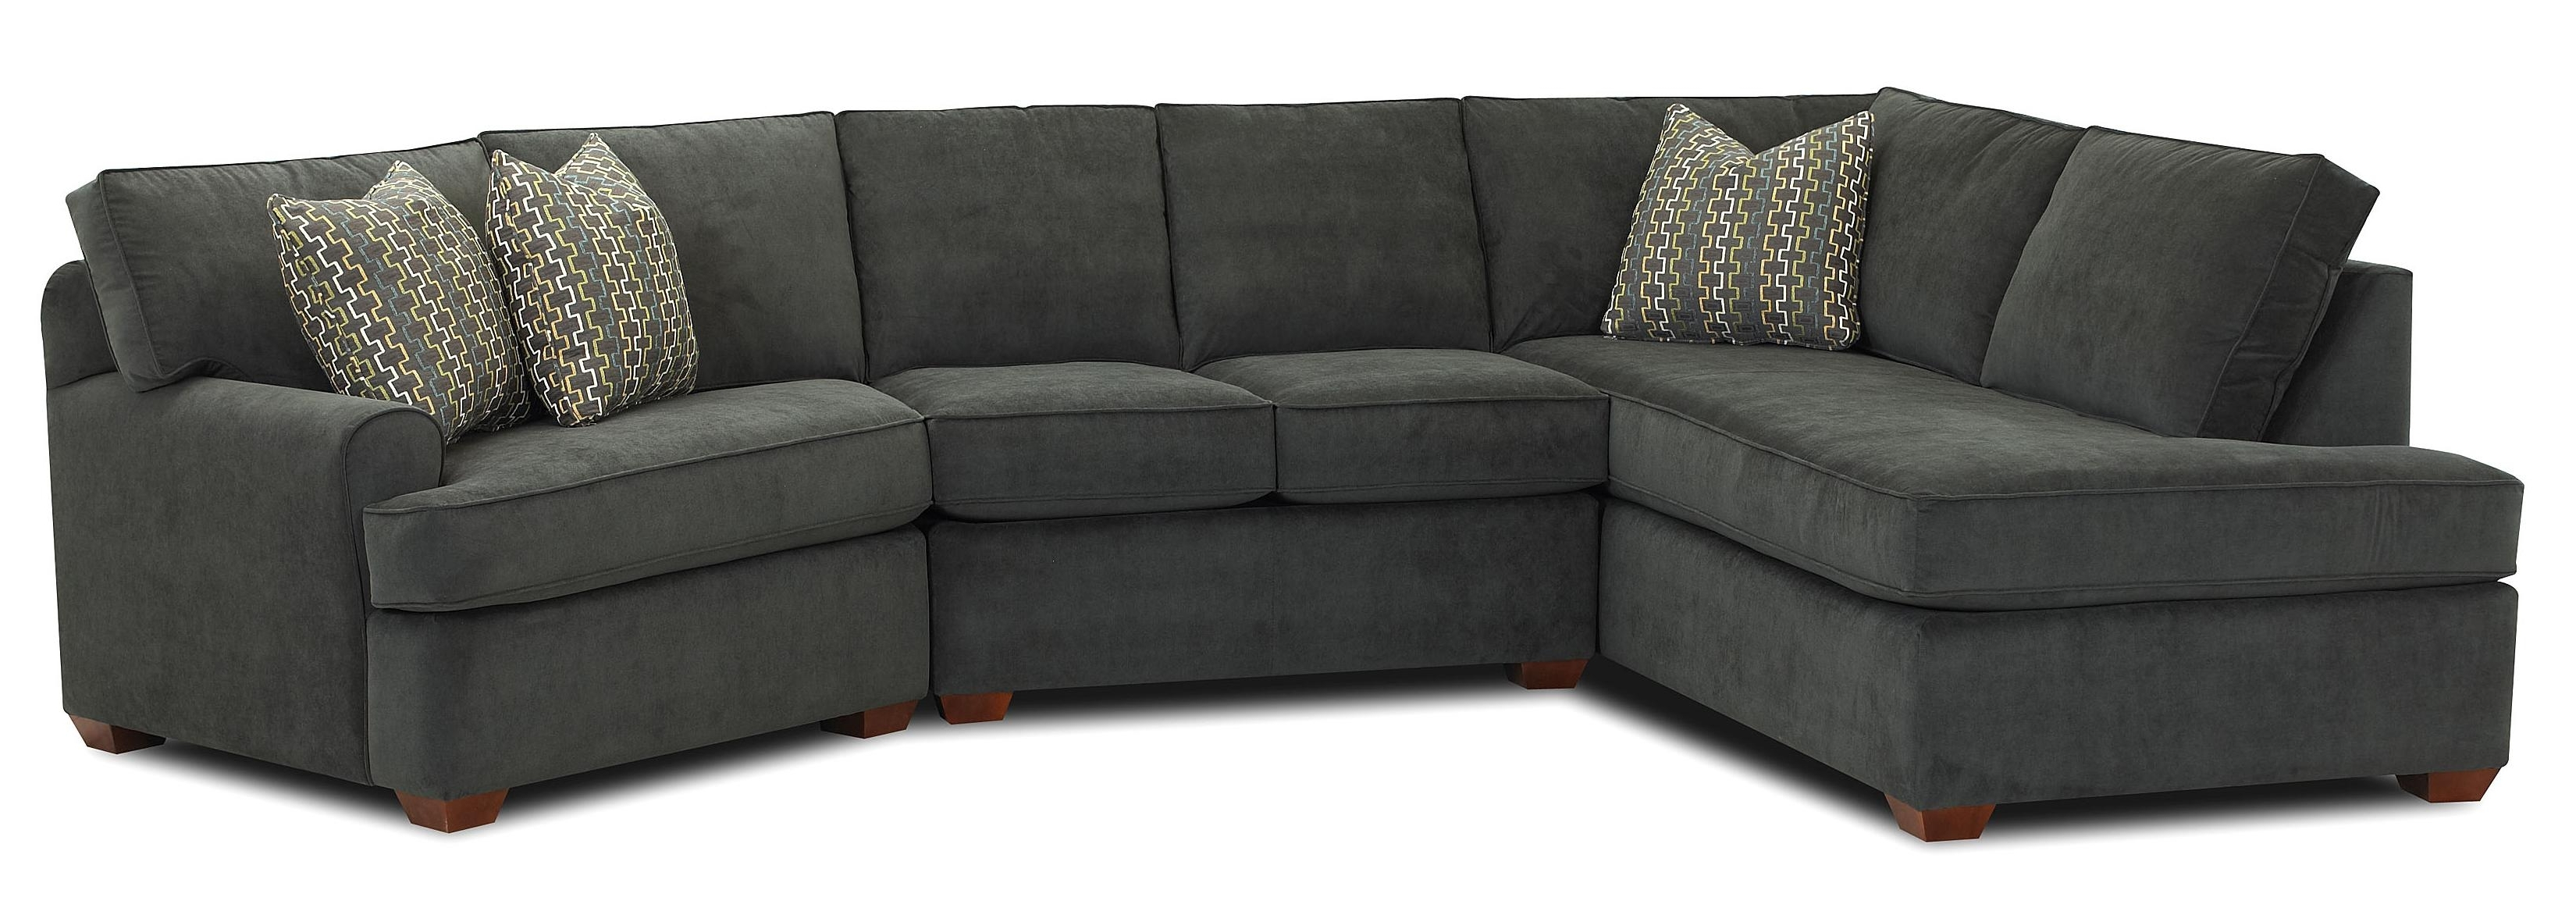 Most Up To Date Couches With Chaise Pertaining To Klaussner Hybrid Sectional Sofa With Left Facing Sofa Chaise (View 10 of 15)